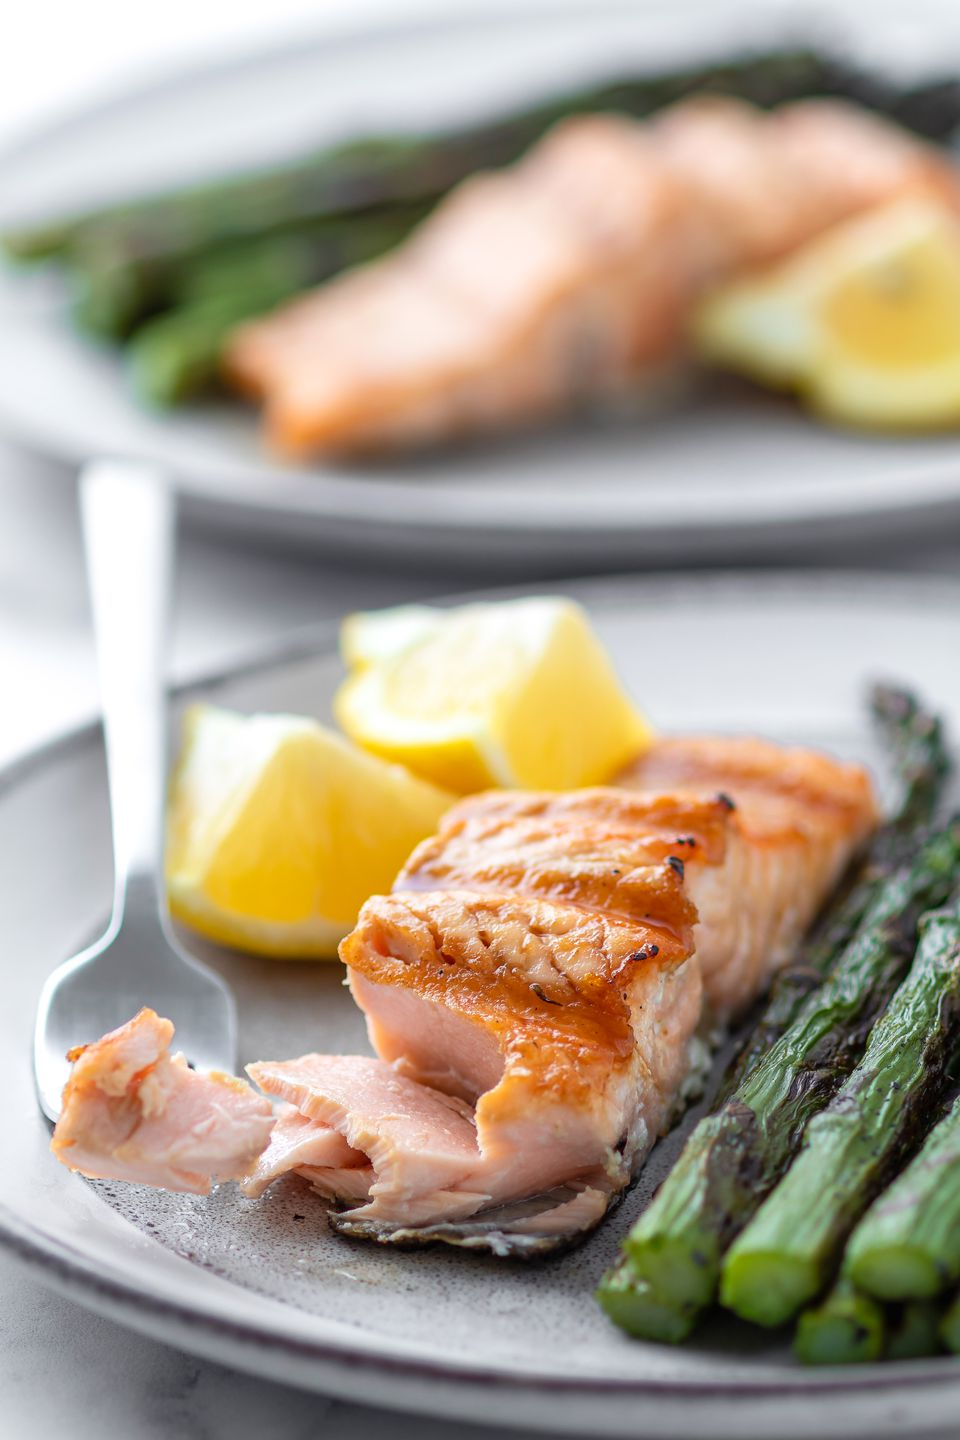 Grilled salmon on a plate with asparagus and a second plate behind it.